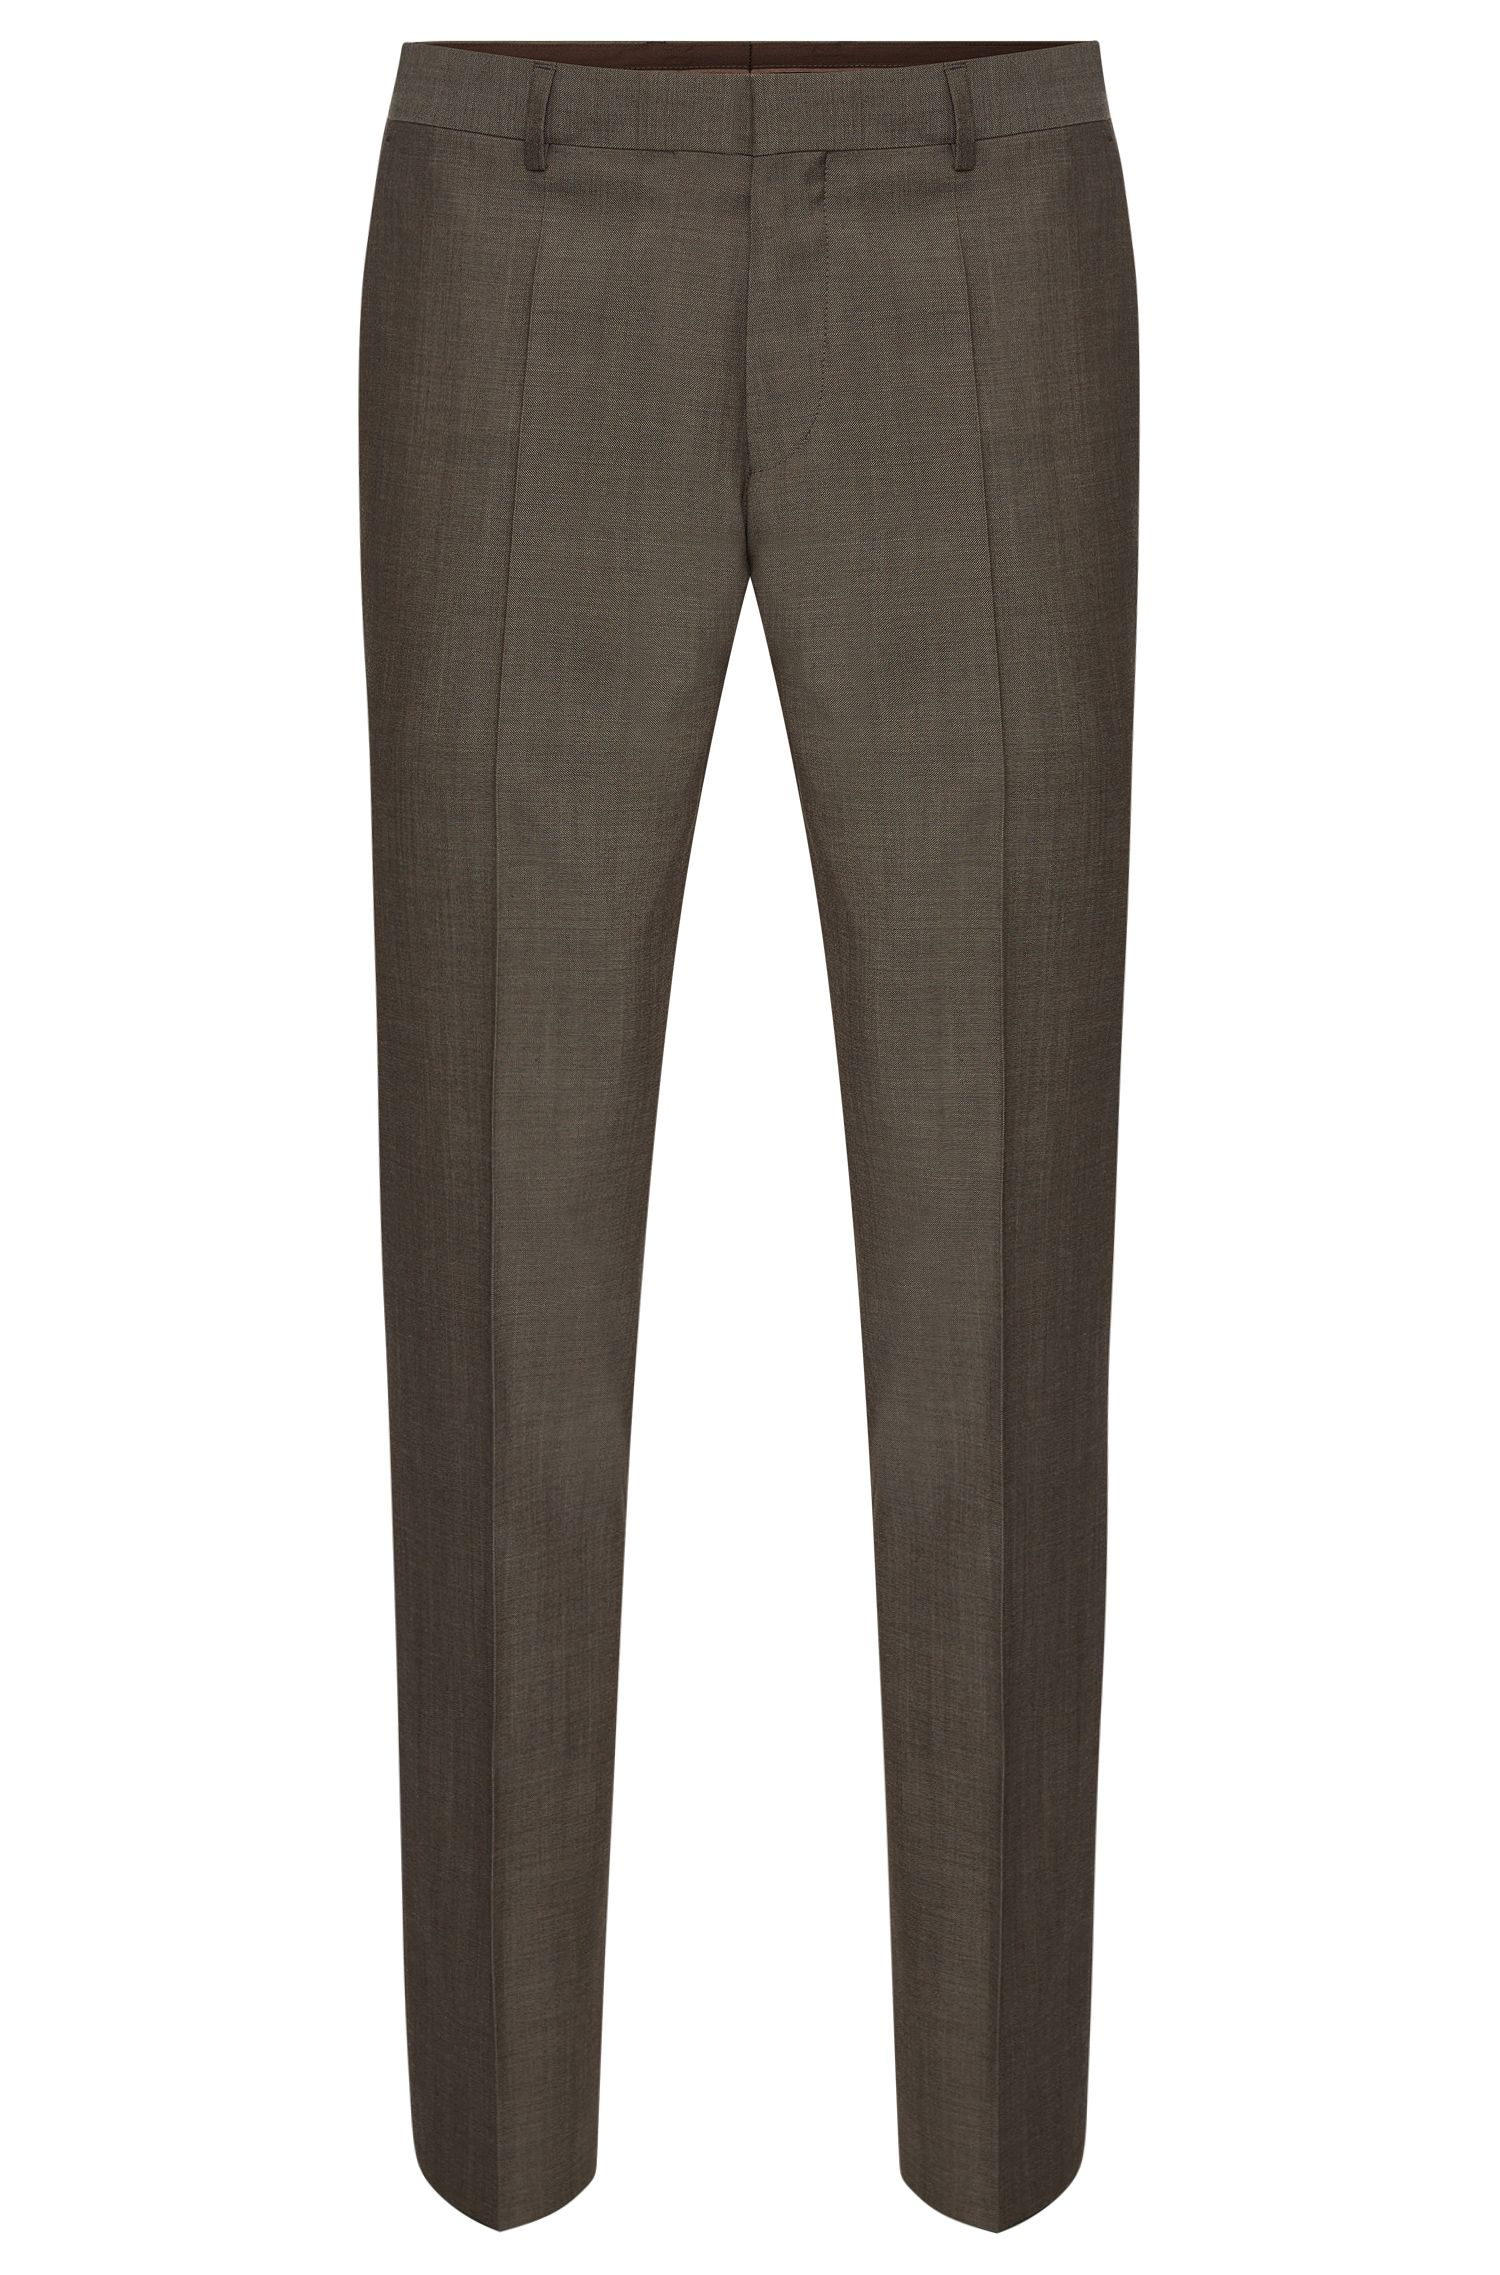 'Genesis' | Slim Fit, Italian Super 100 Virgin Wool Dress Pants